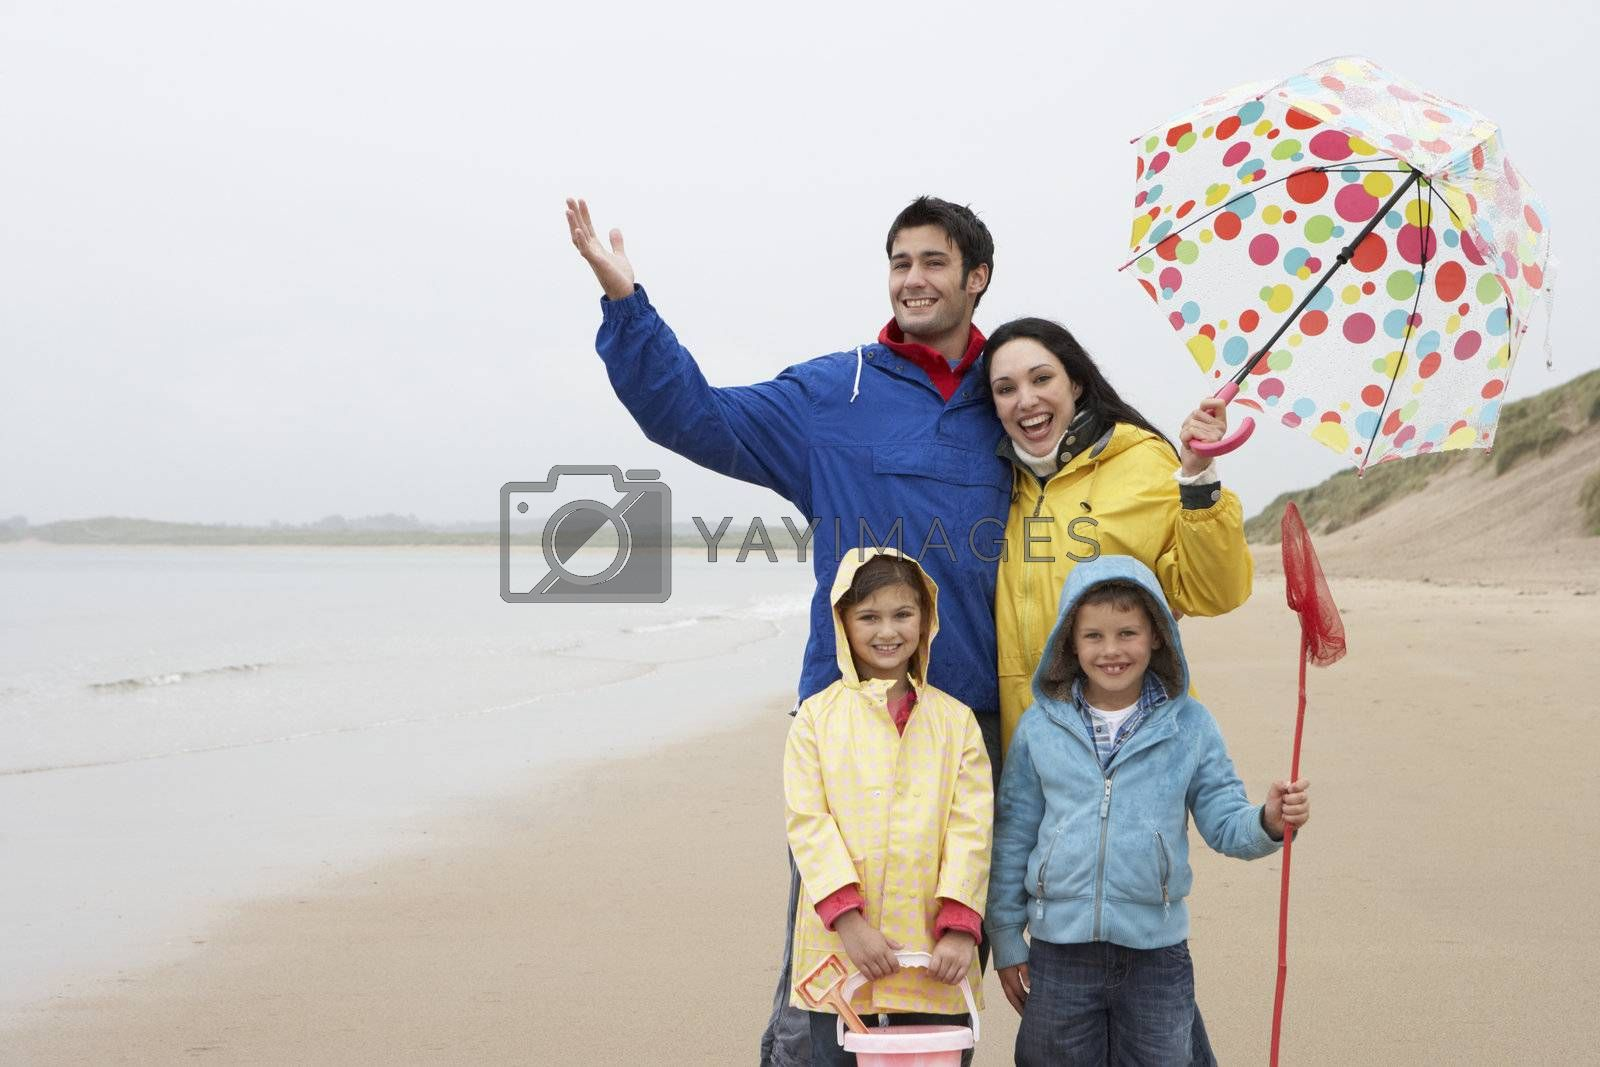 Royalty free image of Happy family on beach with umbrella by omg_images